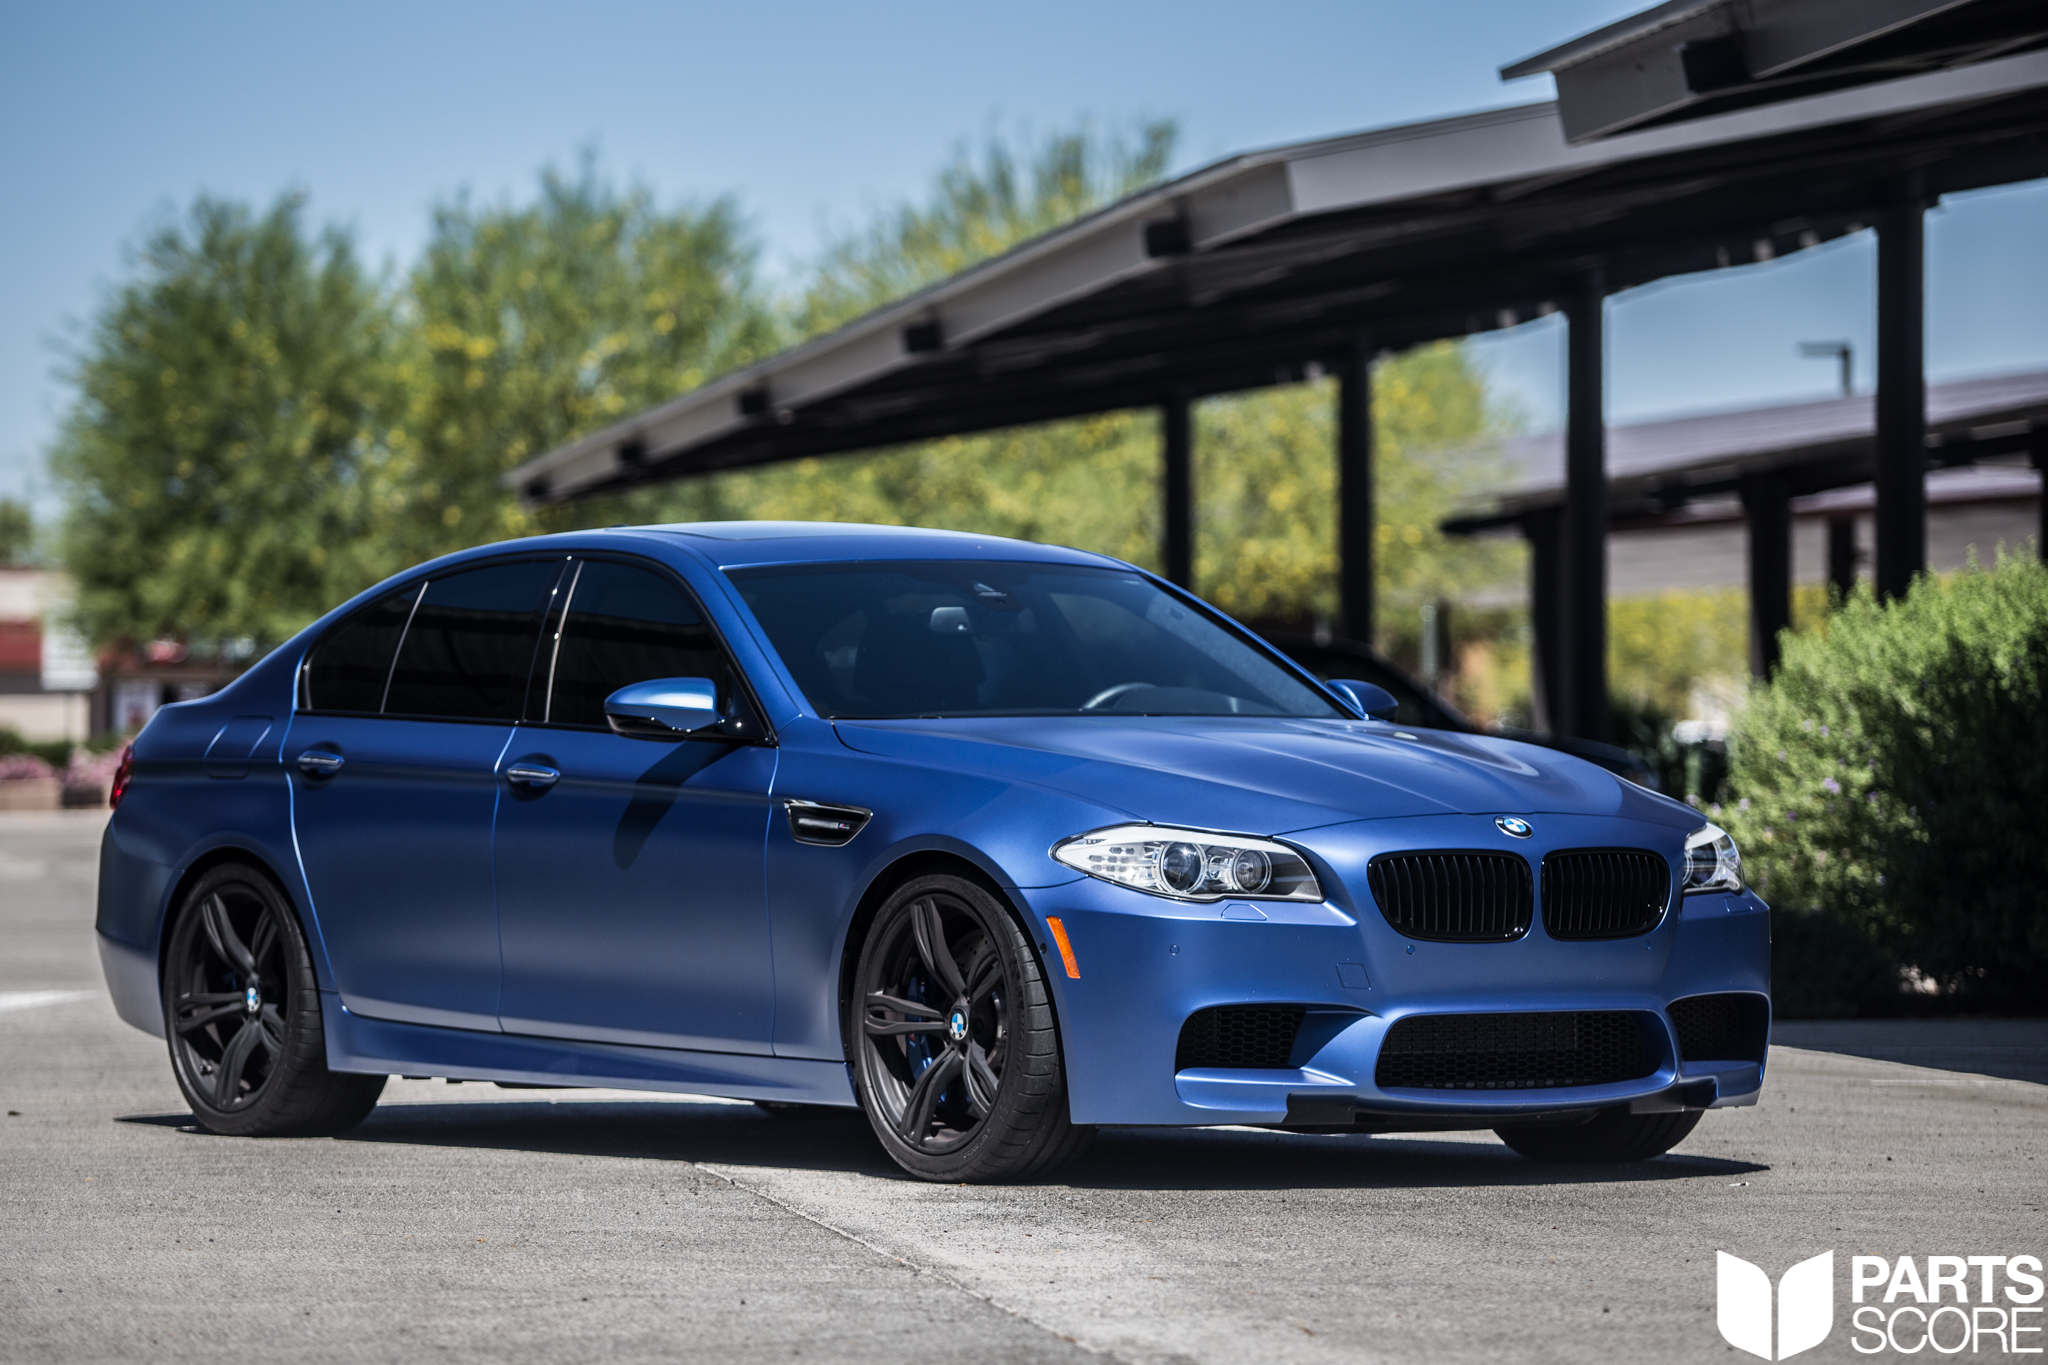 Bmw M5 F10 >> BMW F10 M5: 700 + HP With Only Two Easy Modifications, Find Out More Inside! - Parts Score